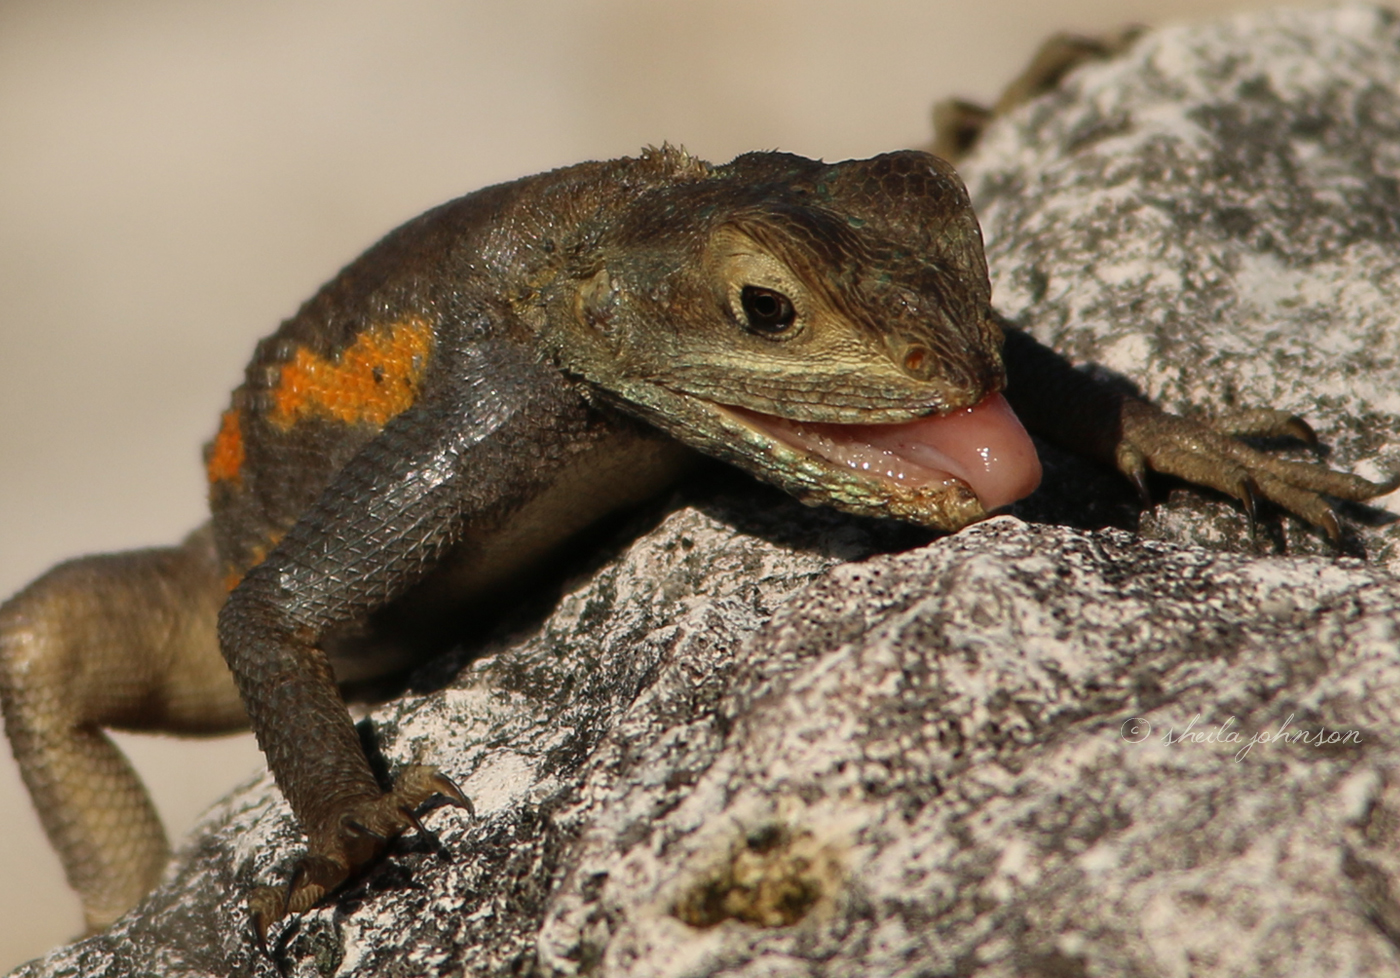 From What I Can Tell, The Agama Lizard Isn't One Of Those Creatures Which Eats Rocks To Aid In Digestion, So We Can Only Guess This One Is Licking Up A Bug. Yum! Or Not.